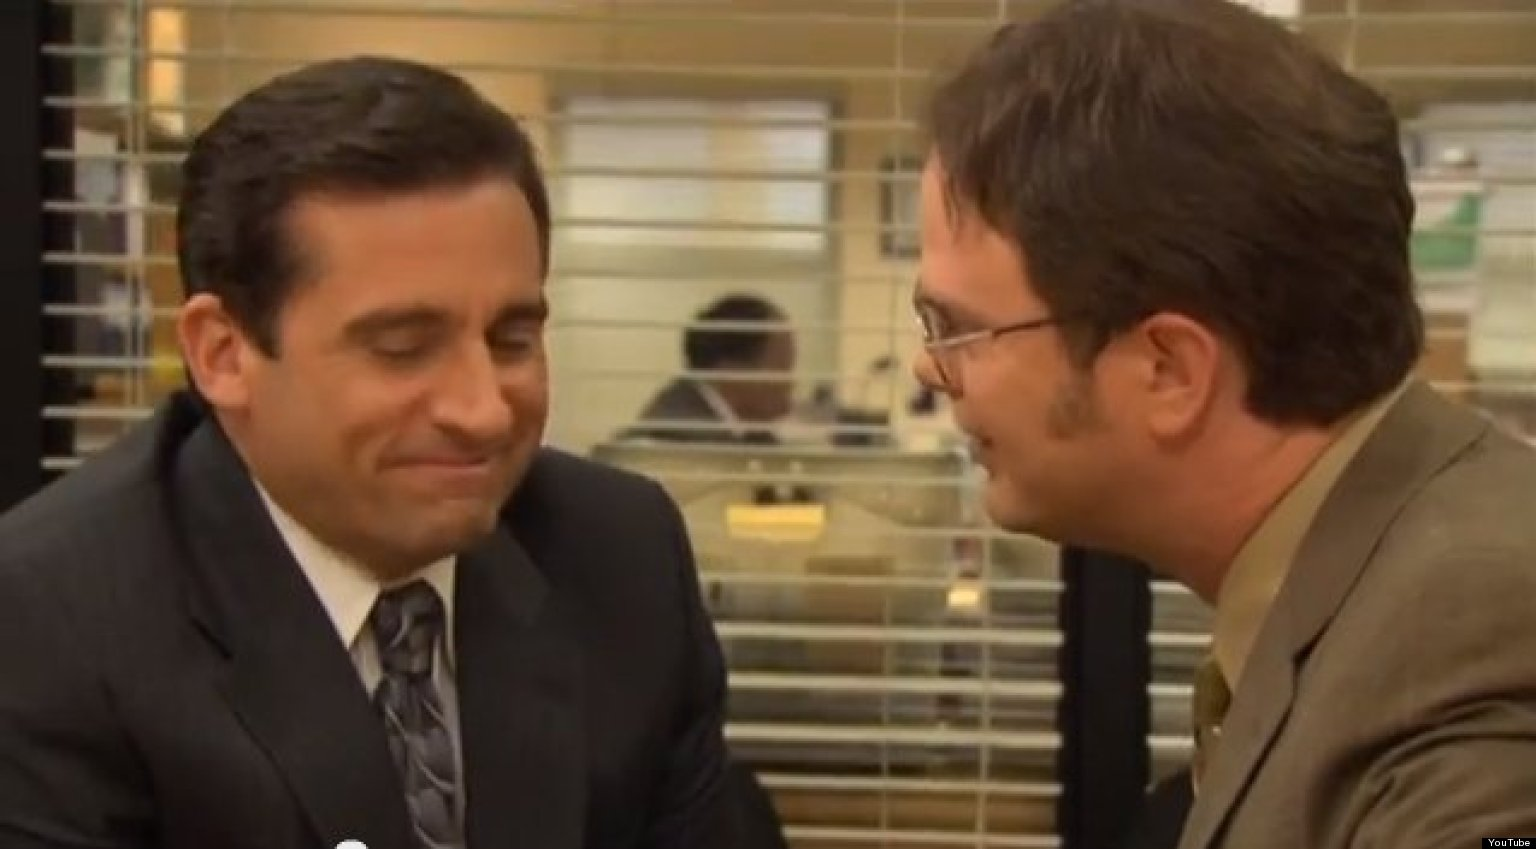 Wonderful 39The Office39 Blooper Reel Two Hours Of Hilarious Outtakes